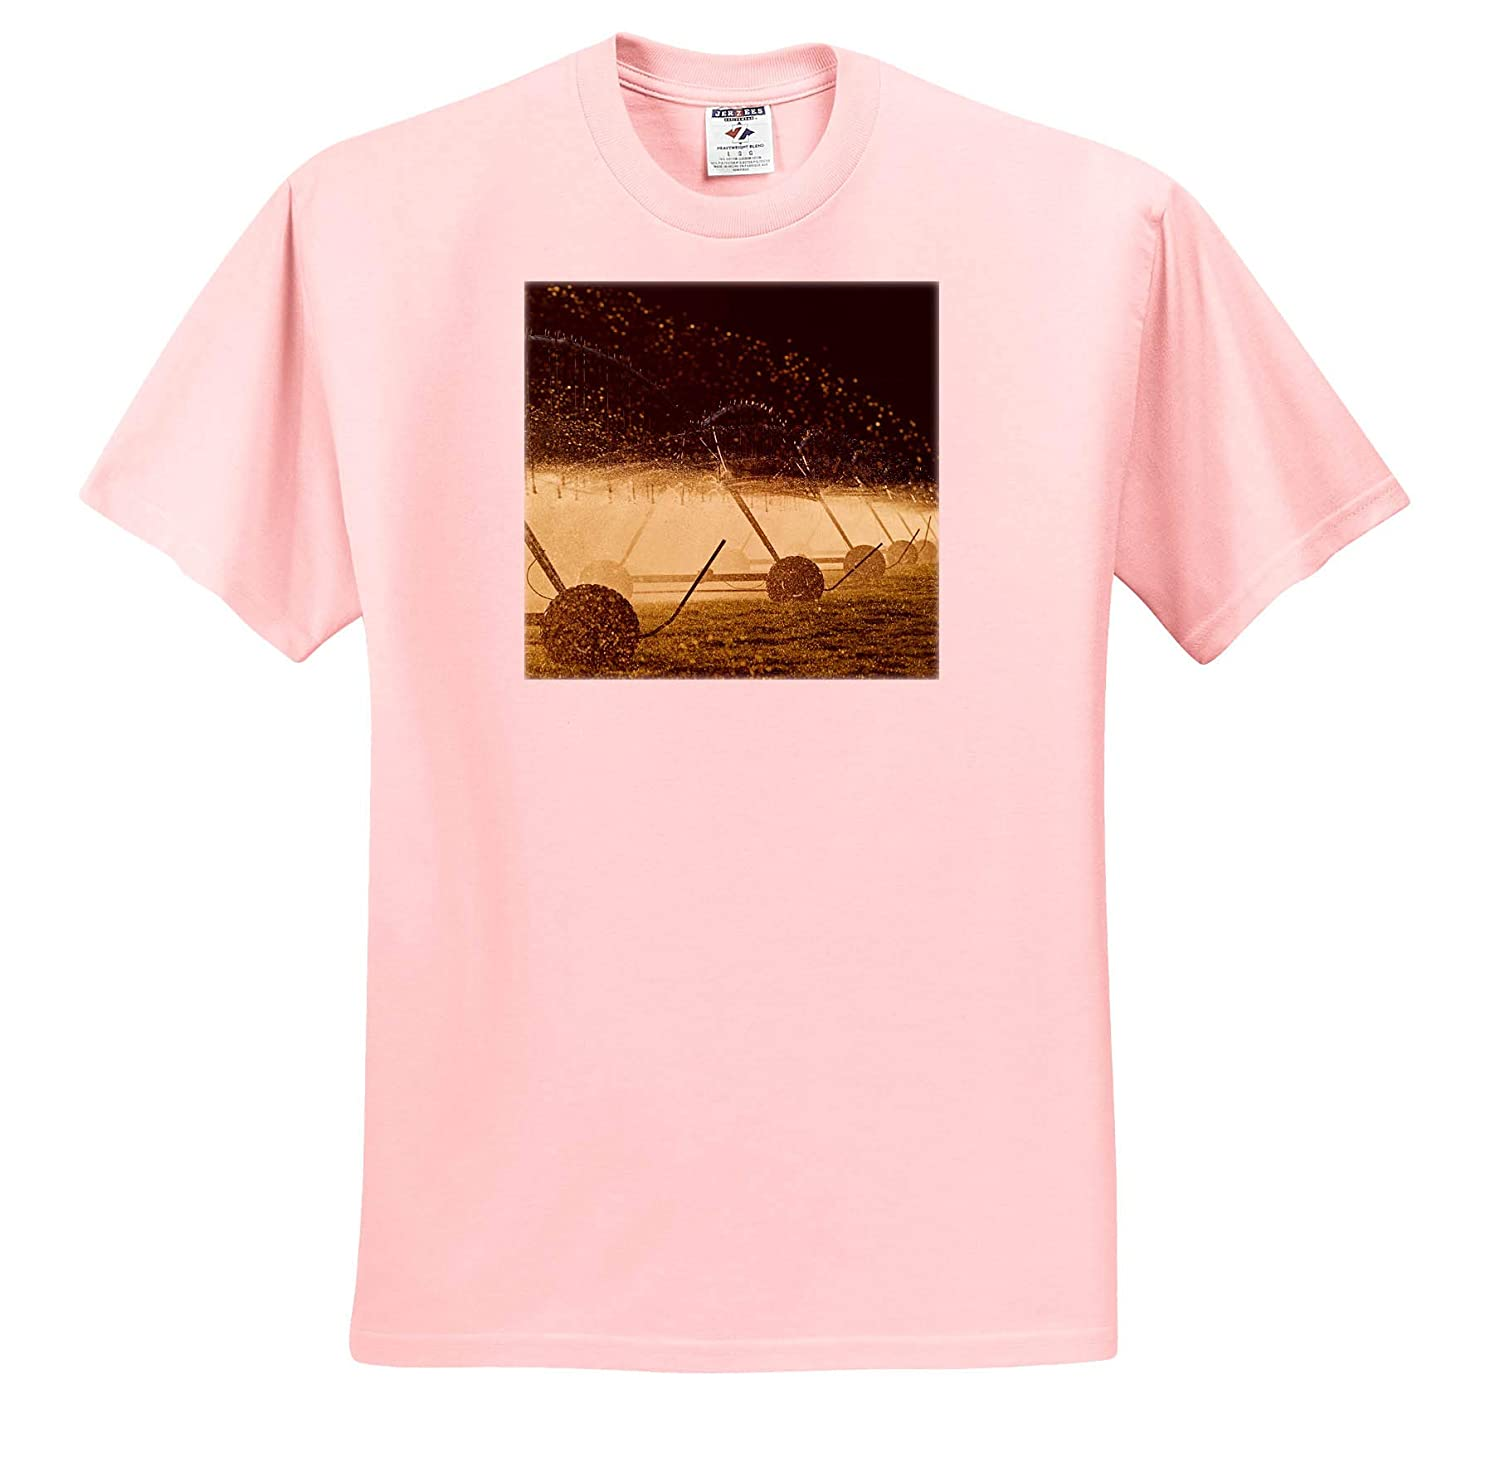 - Adult T-Shirt XL Backlit 3dRose Danita Delimont Irrigation Equipment Spraying Water Agriculture ts/_312944